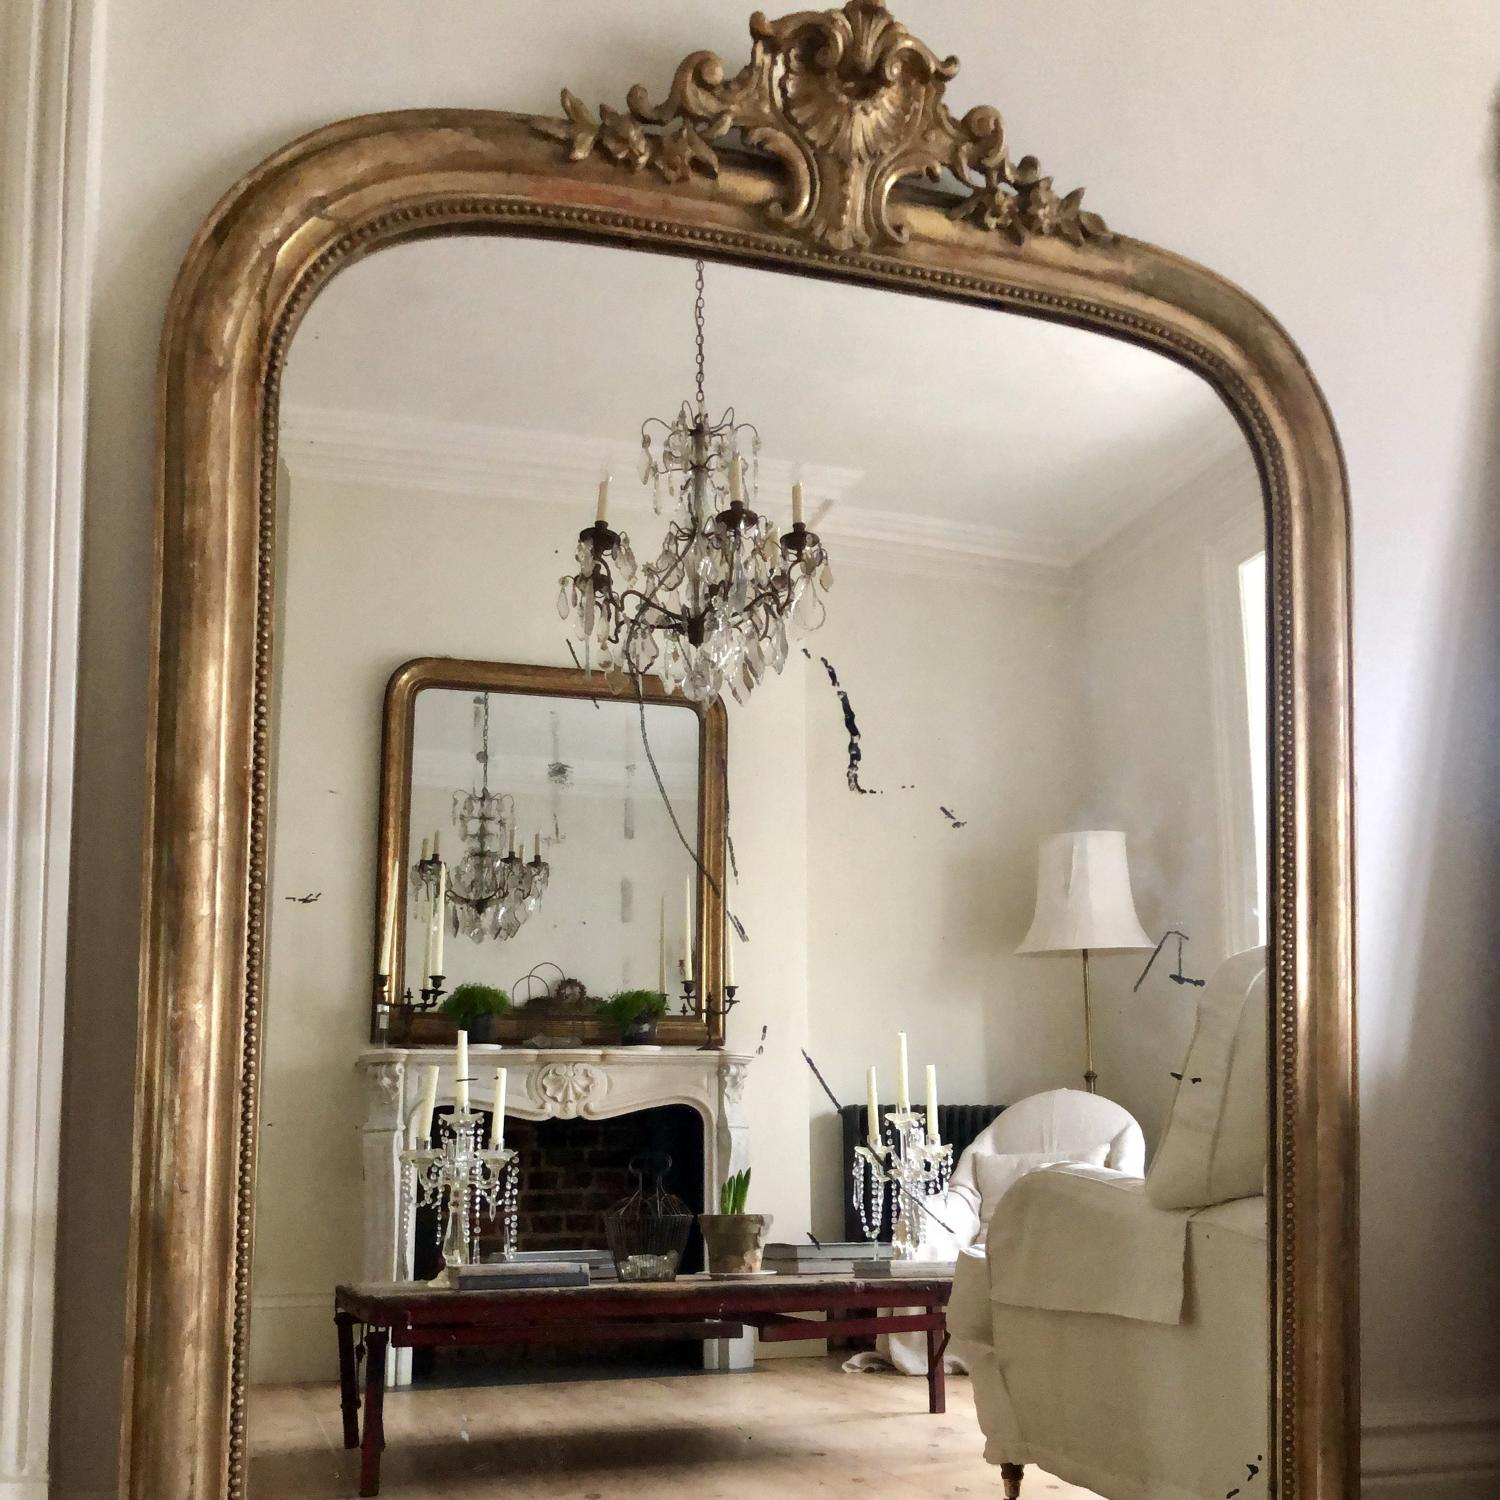 Large antique 19th century gilt Louis XV mirror